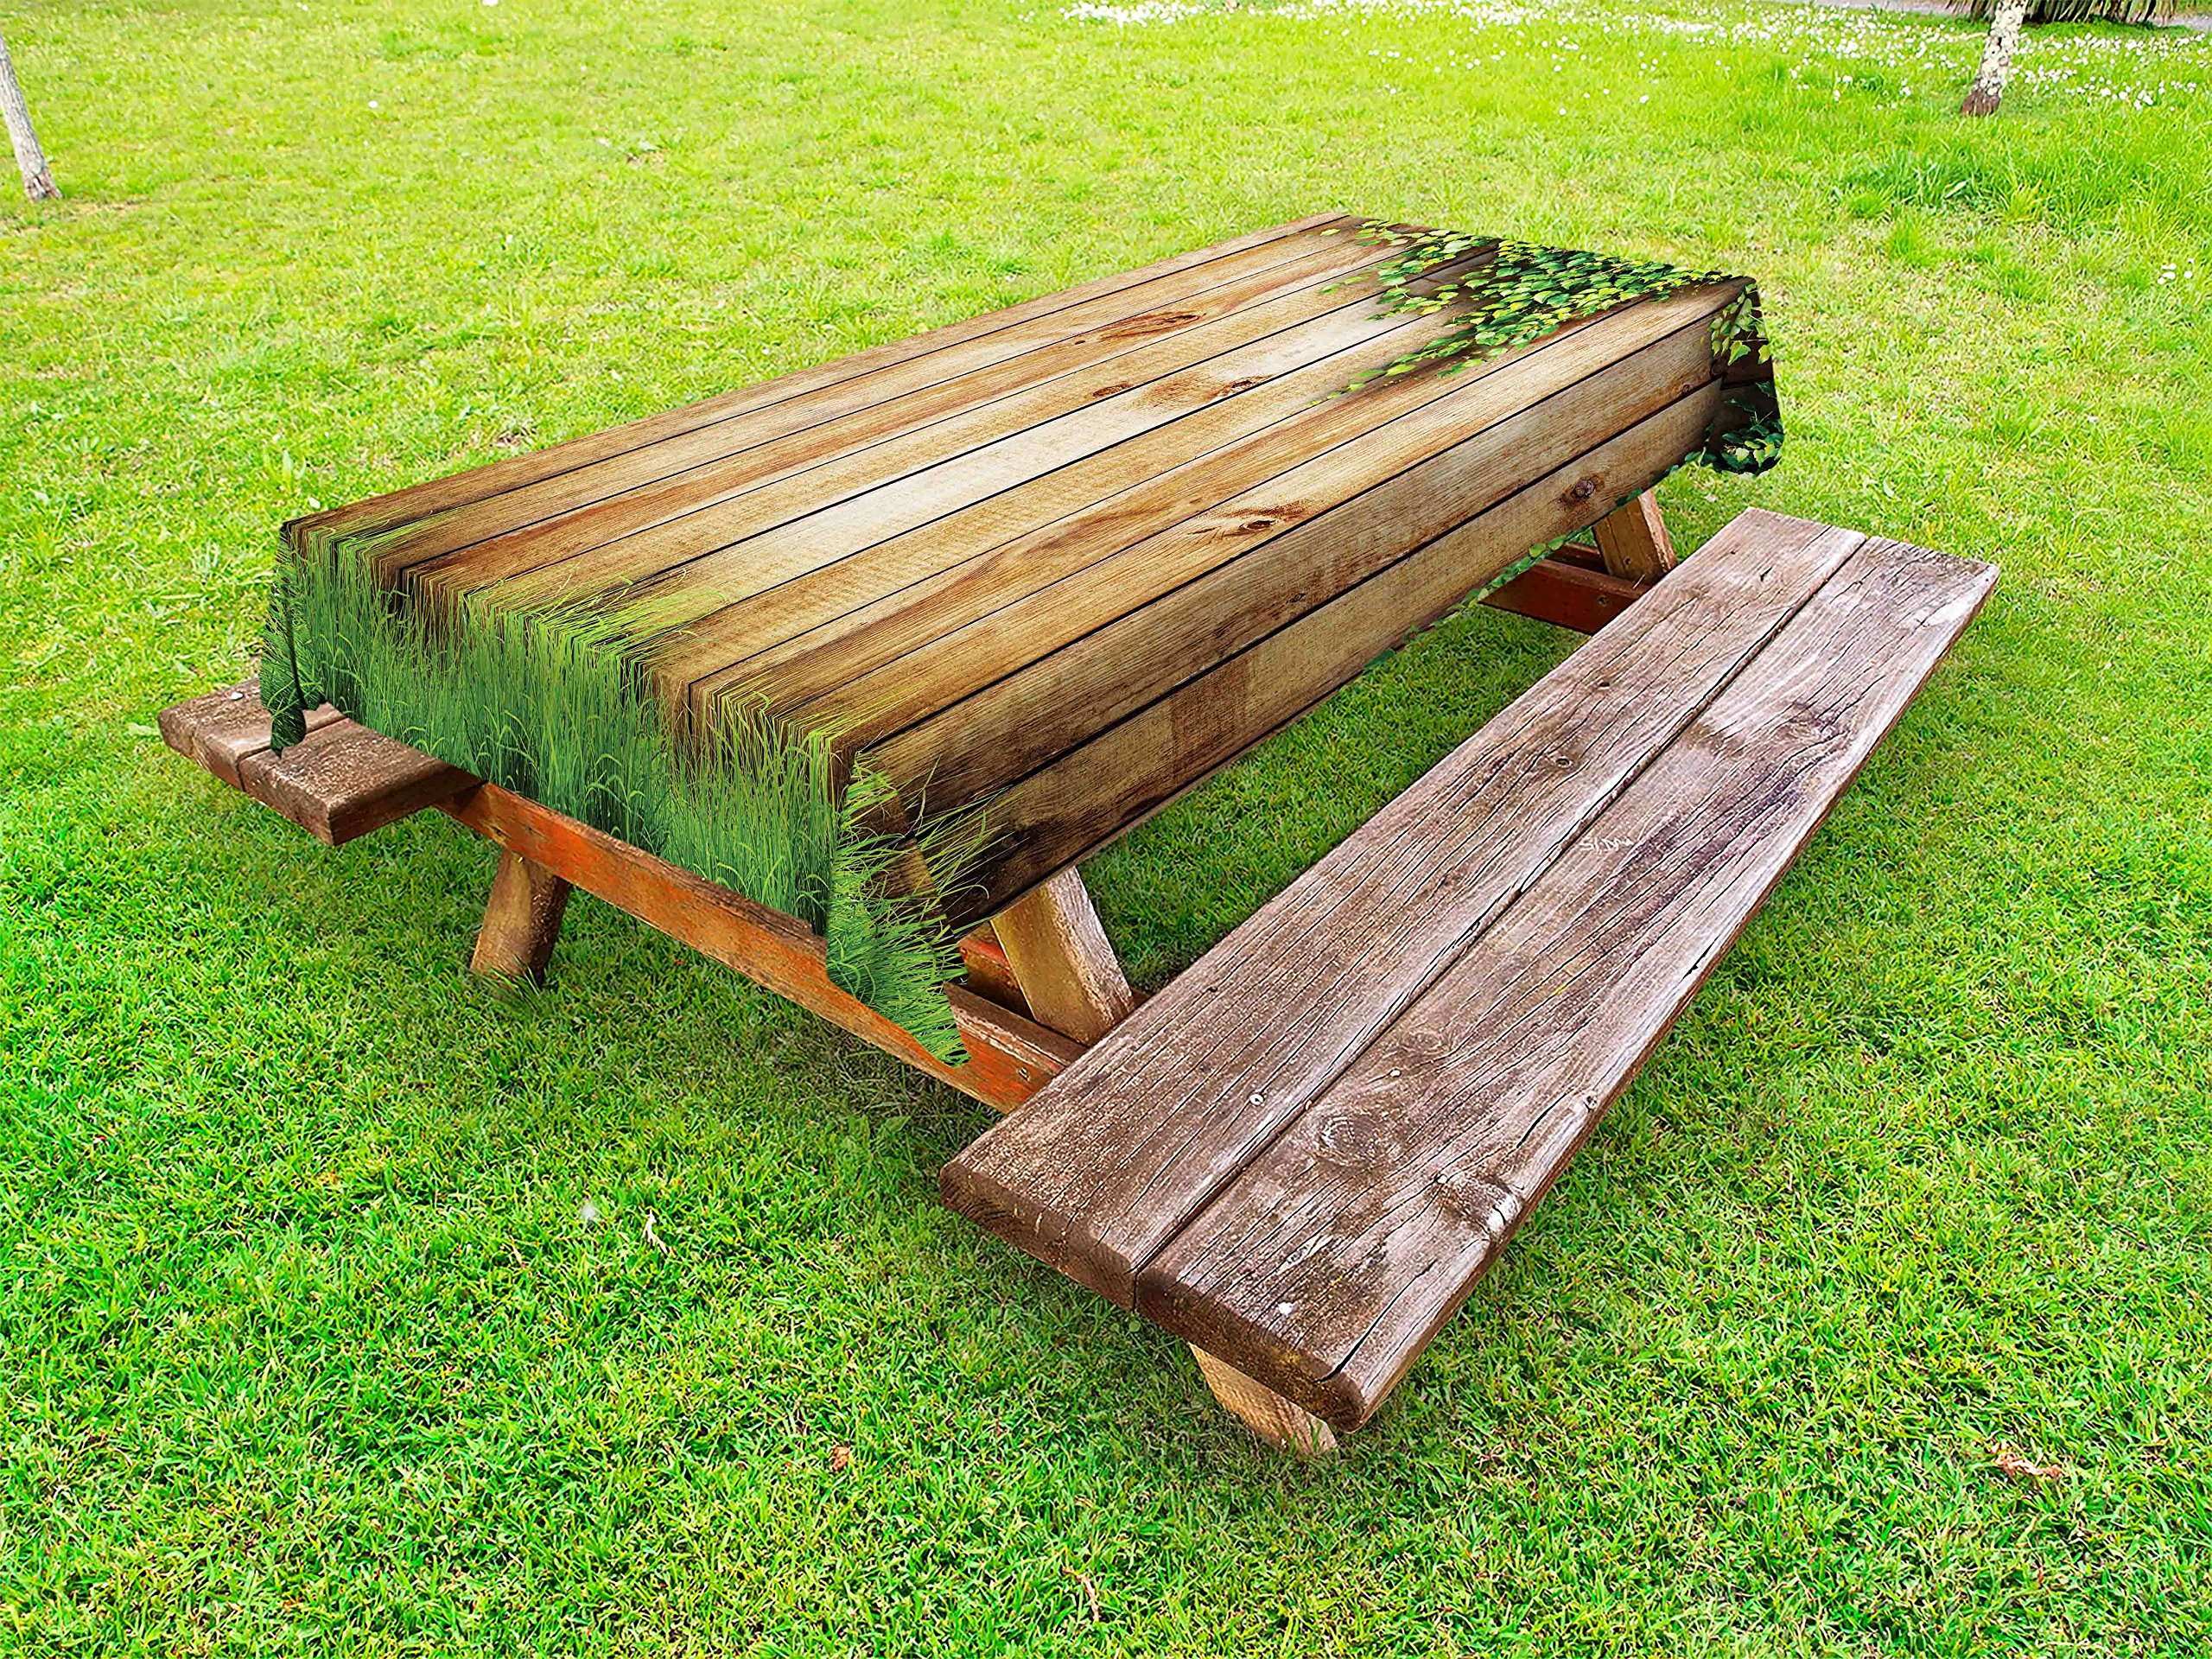 Ambesonne Rustic Outdoor Tablecloth, Fresh Spring Season Grass and Leaf Plant Over Old Wood Fence Garden Field Photo, Decorative Washable Picnic Table Cloth, 58 X 84 inches, Green Brown